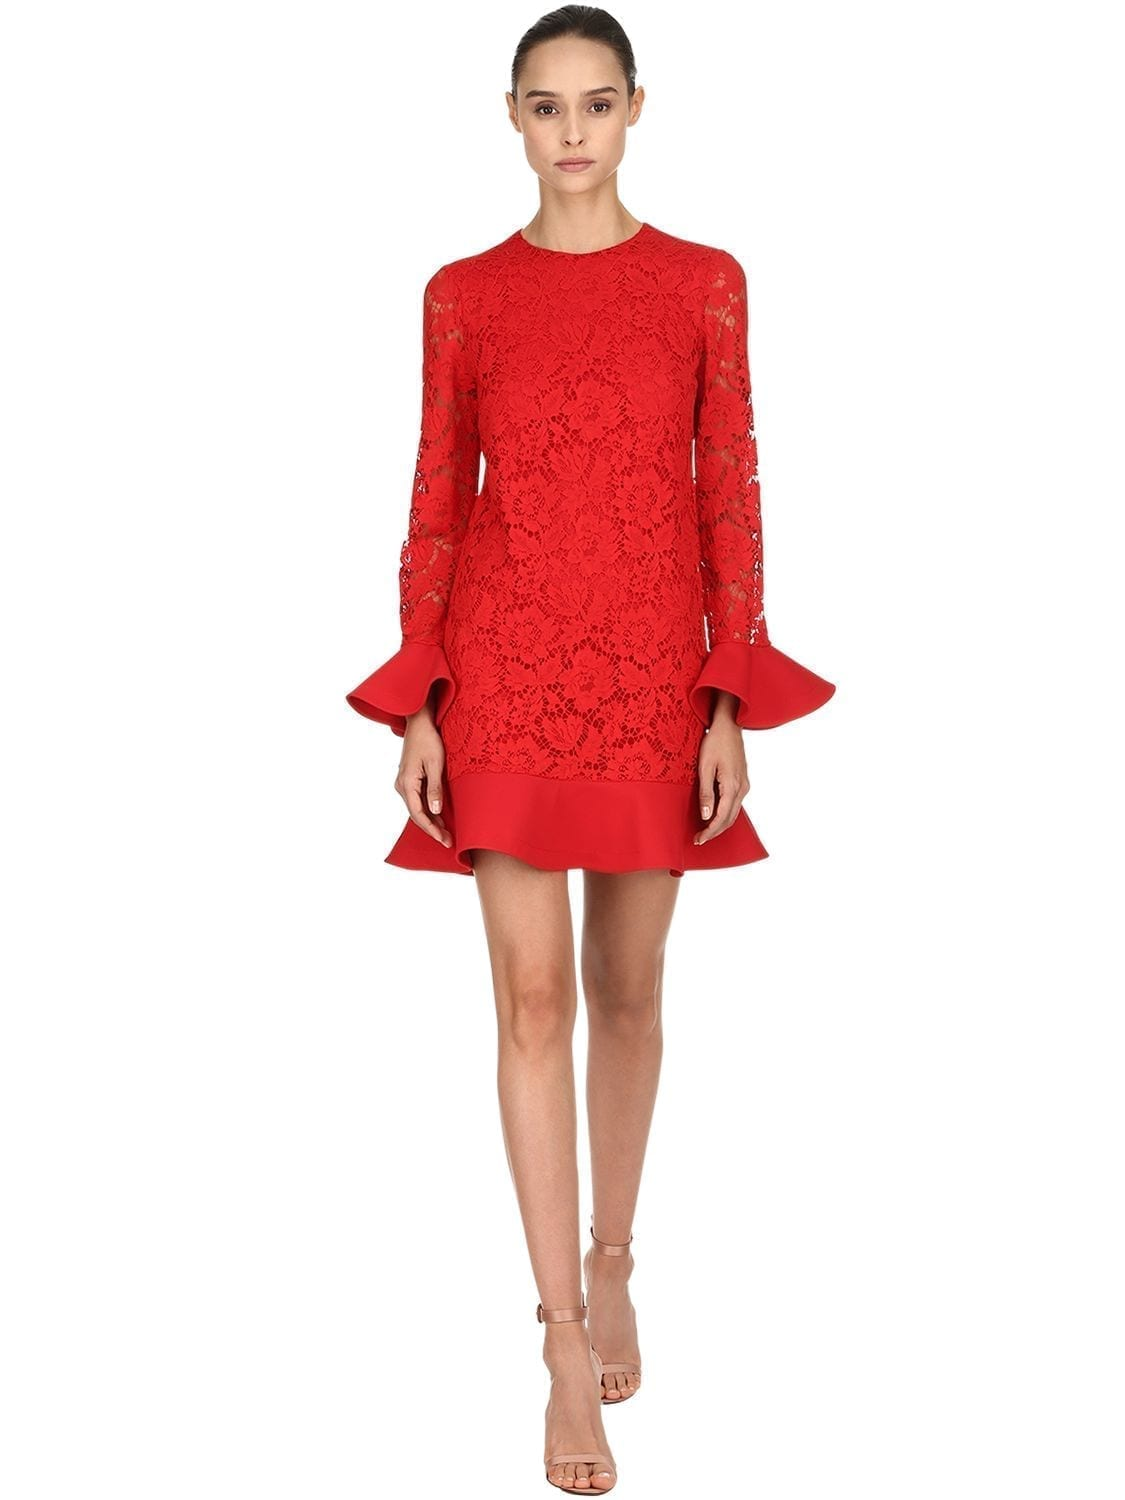 VALENTINO Ruffled Lace Red Dress - We Select Dresses